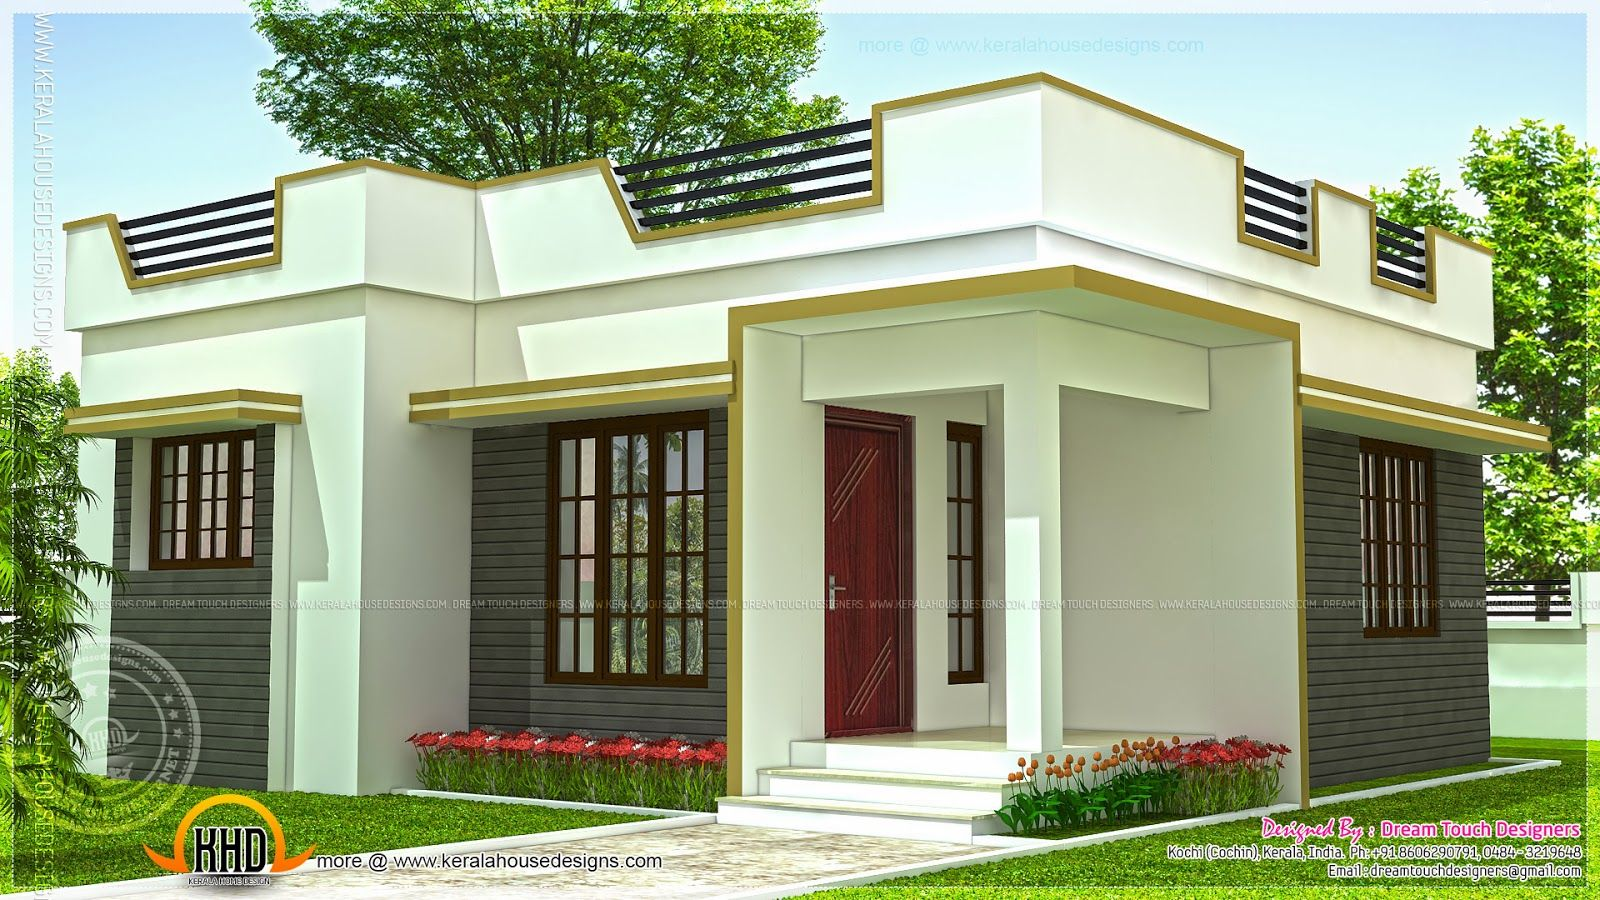 Lately 21 small house design kerala small house for South indian small house designs